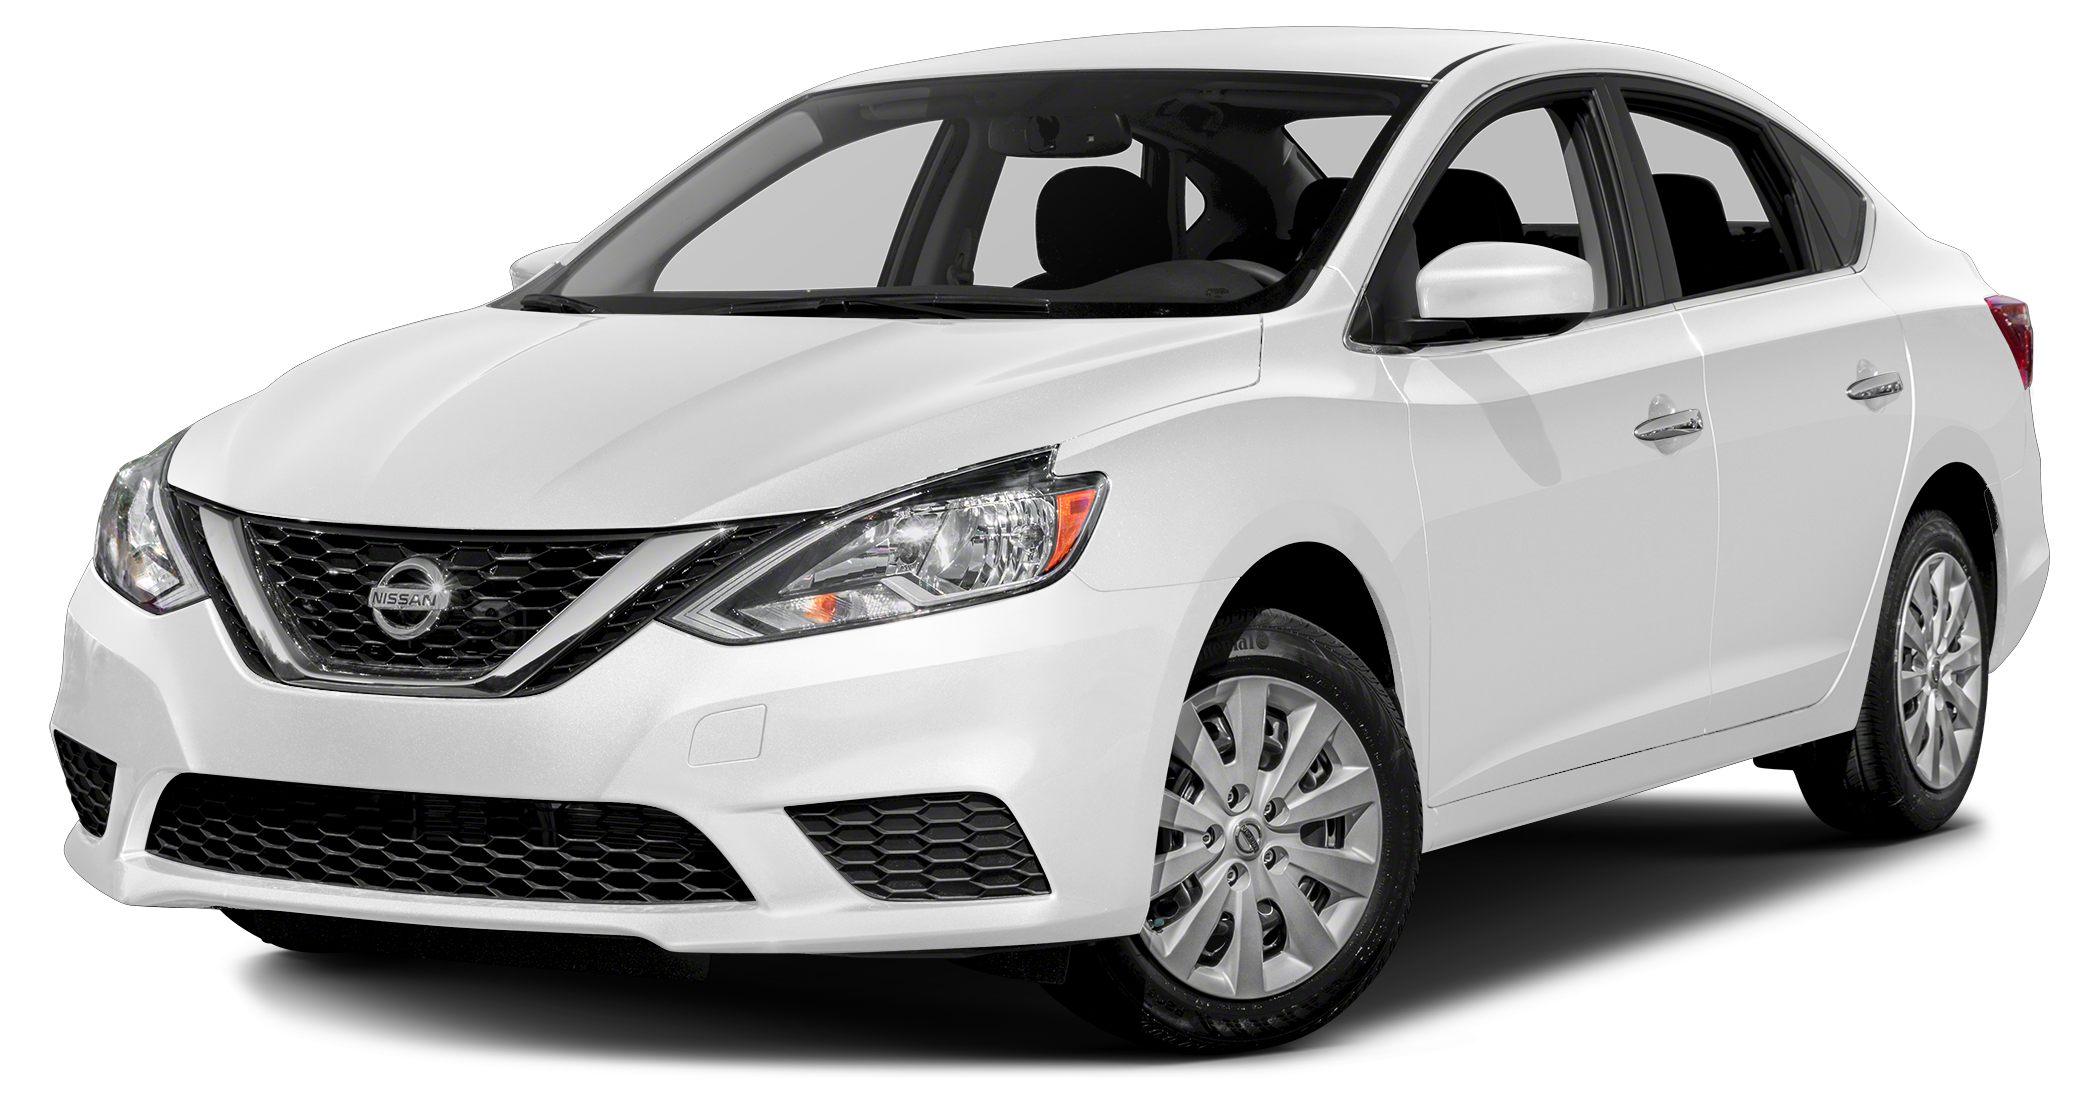 2016 Nissan Sentra S WHAT A DEAL HERE SENTRA S WITH ONLY 6247 MILES AND FACTORY CERTIFIED TOO